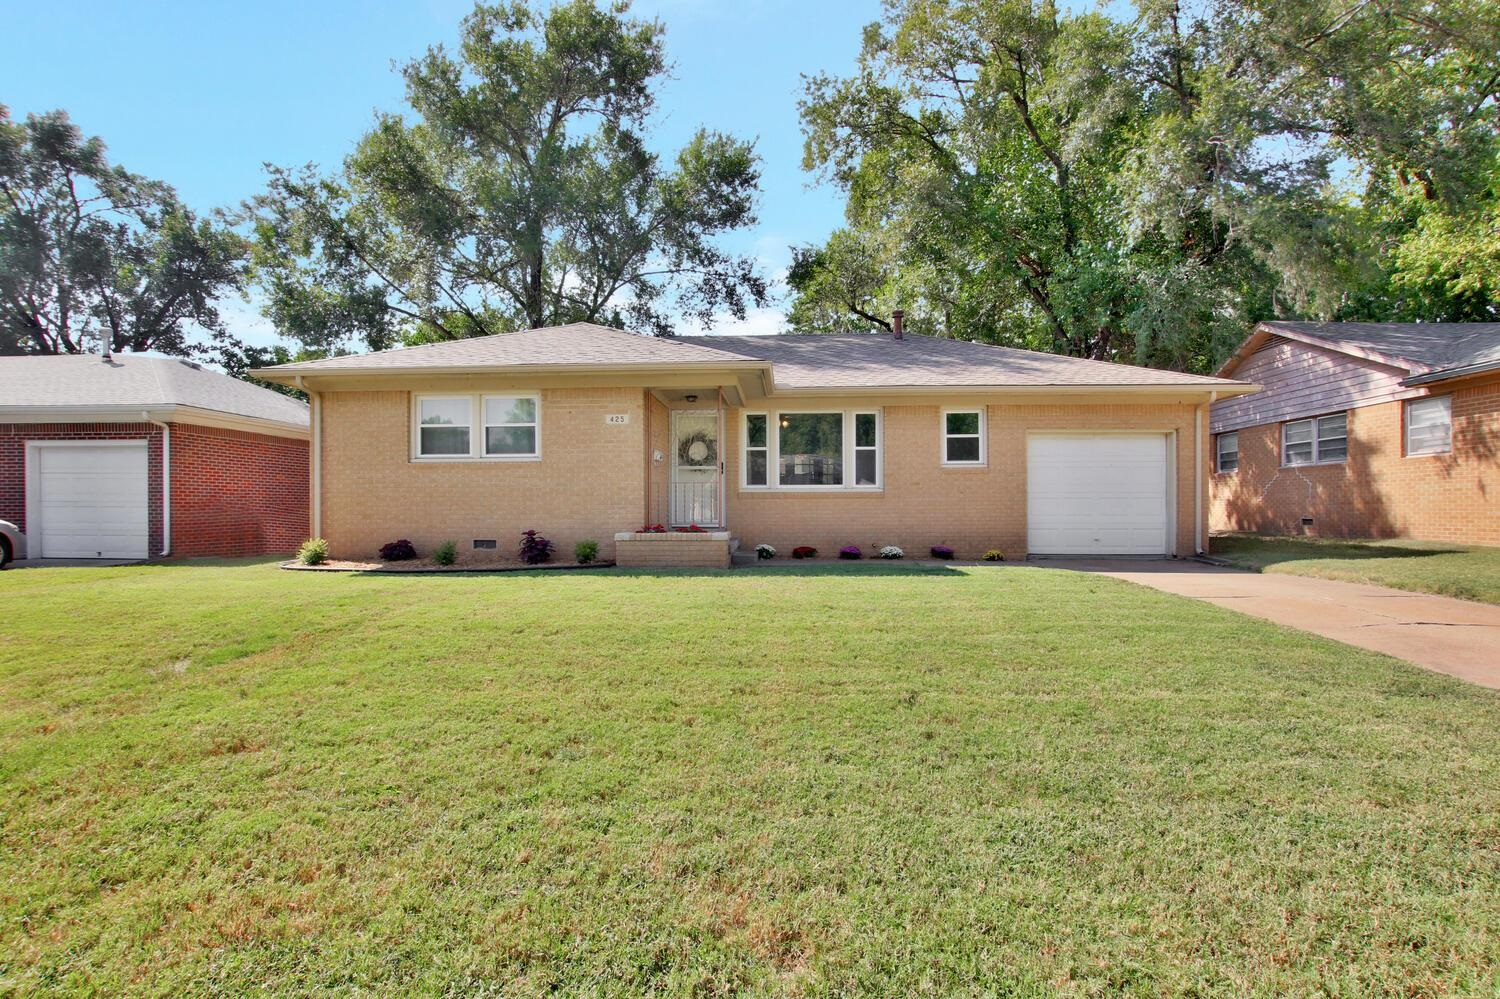 Darling 3 BR, 1 BA brick charmer is updated throughout and move-in ready! Enjoy hardwood flooring, w